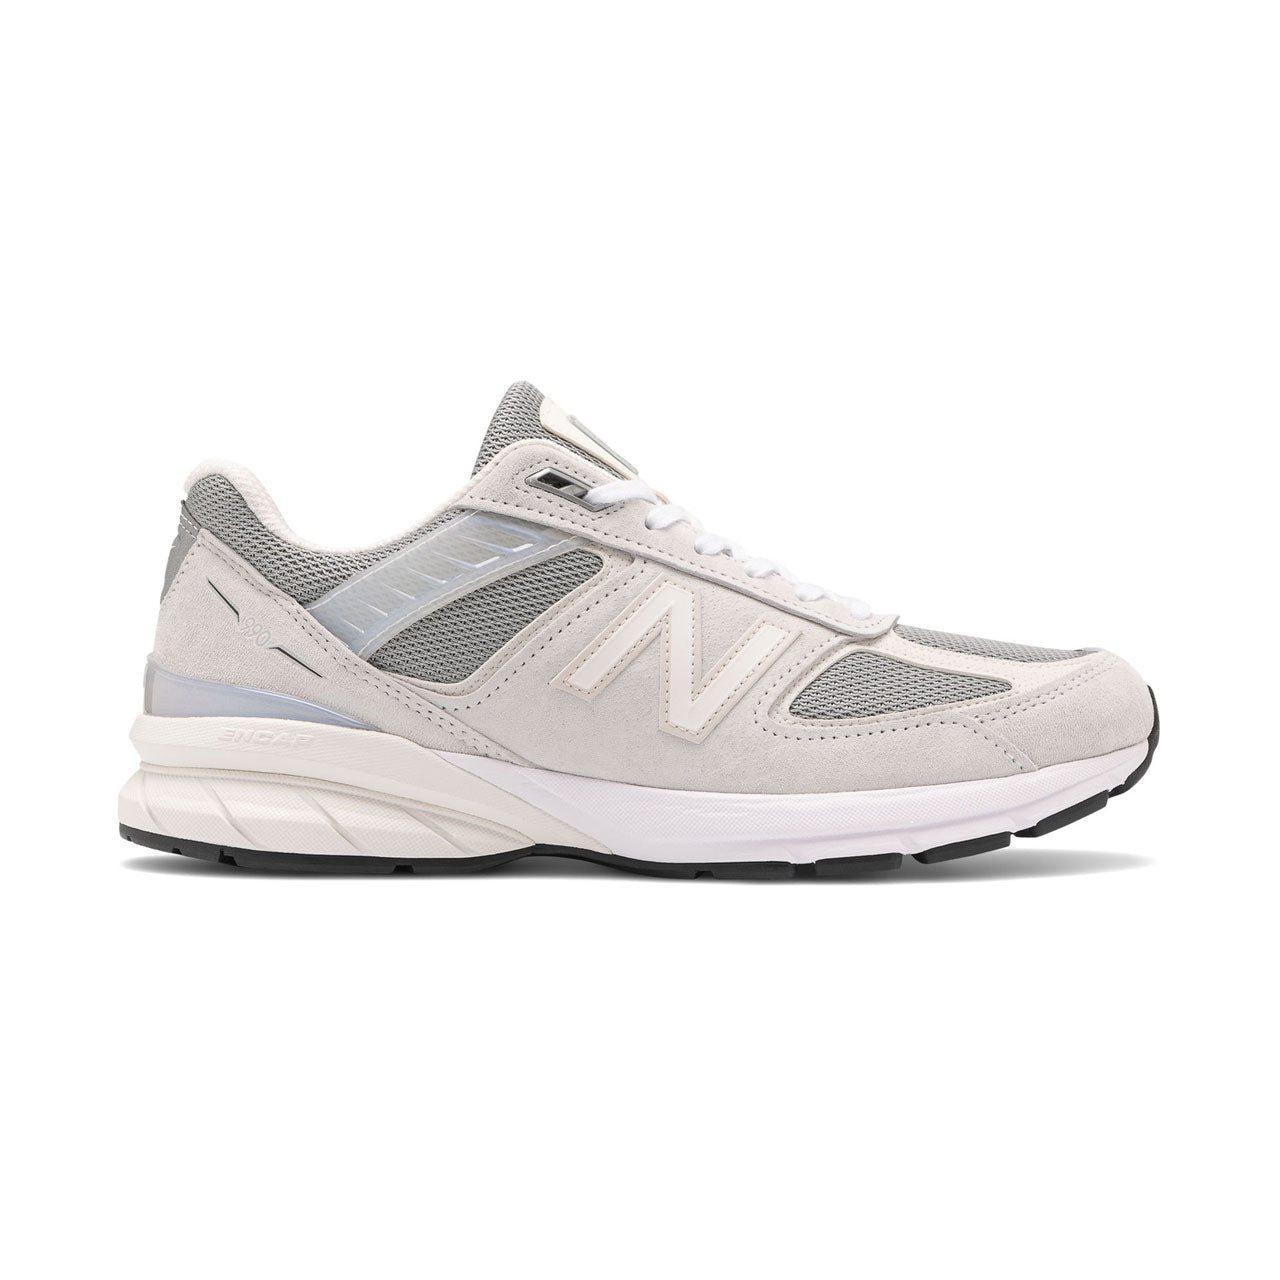 New Balance 990v5 Nimbus Cloud Sneakers